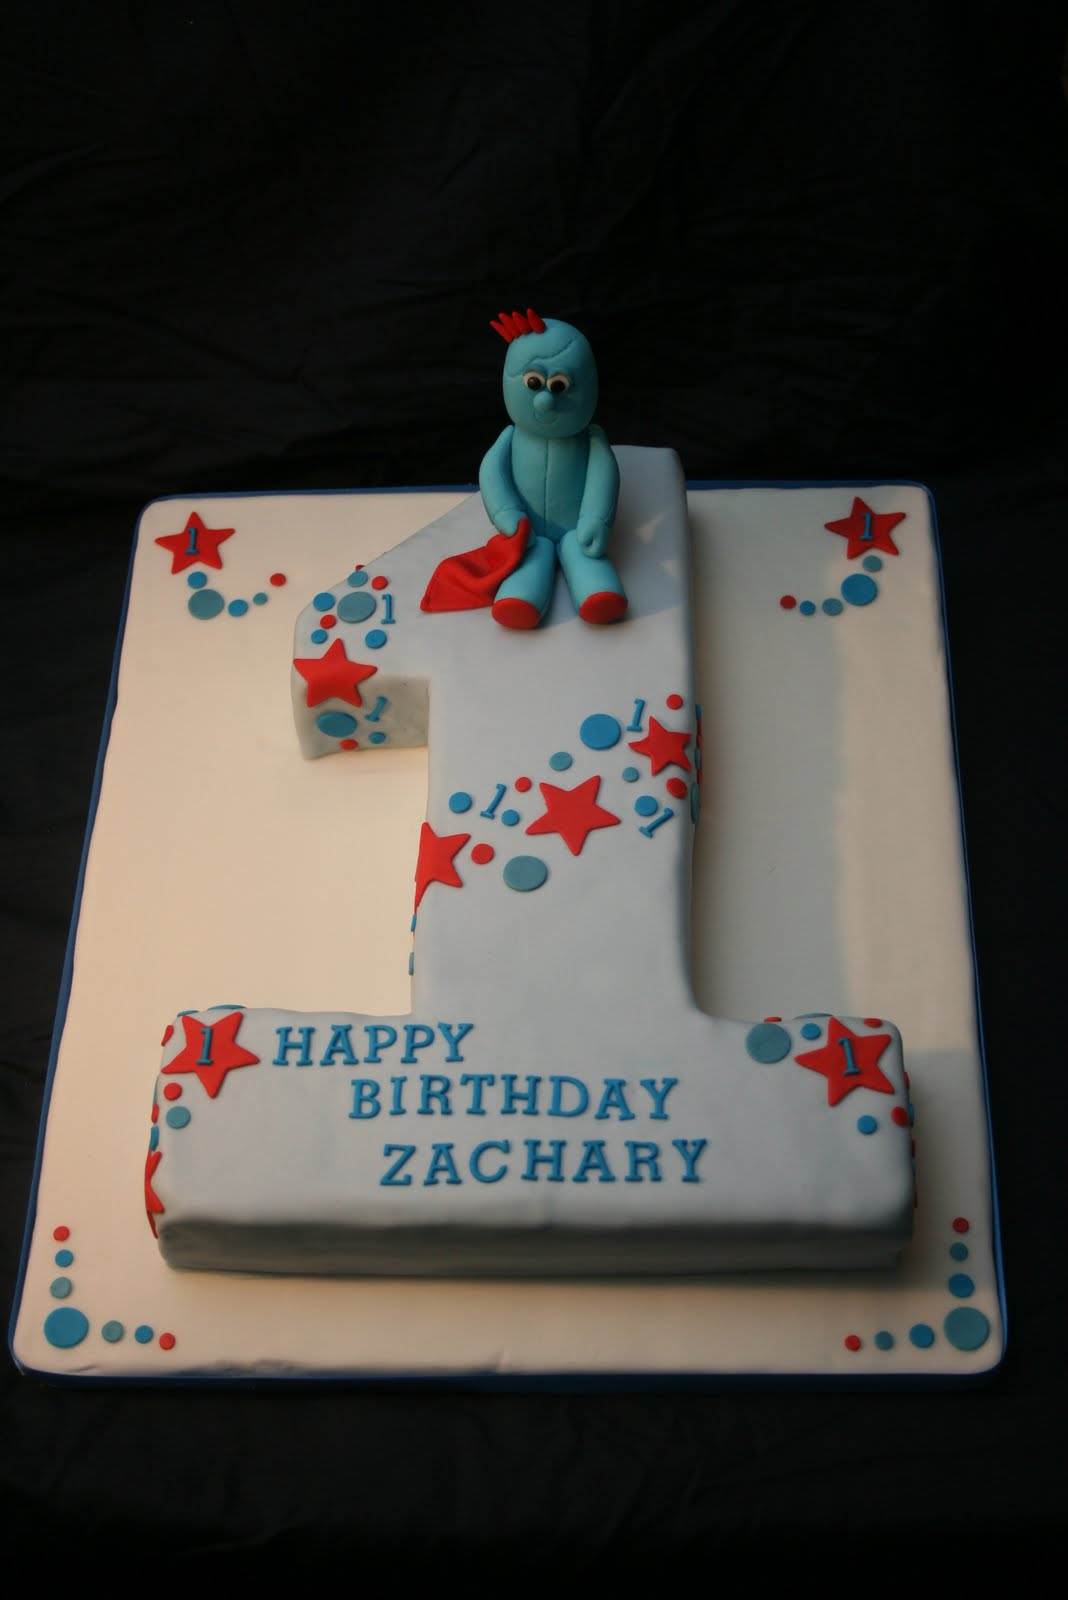 Number 2 Shaped Cakes http://goodcakesarah.blogspot.com/2010/10/iggle-piggle-number-2.html